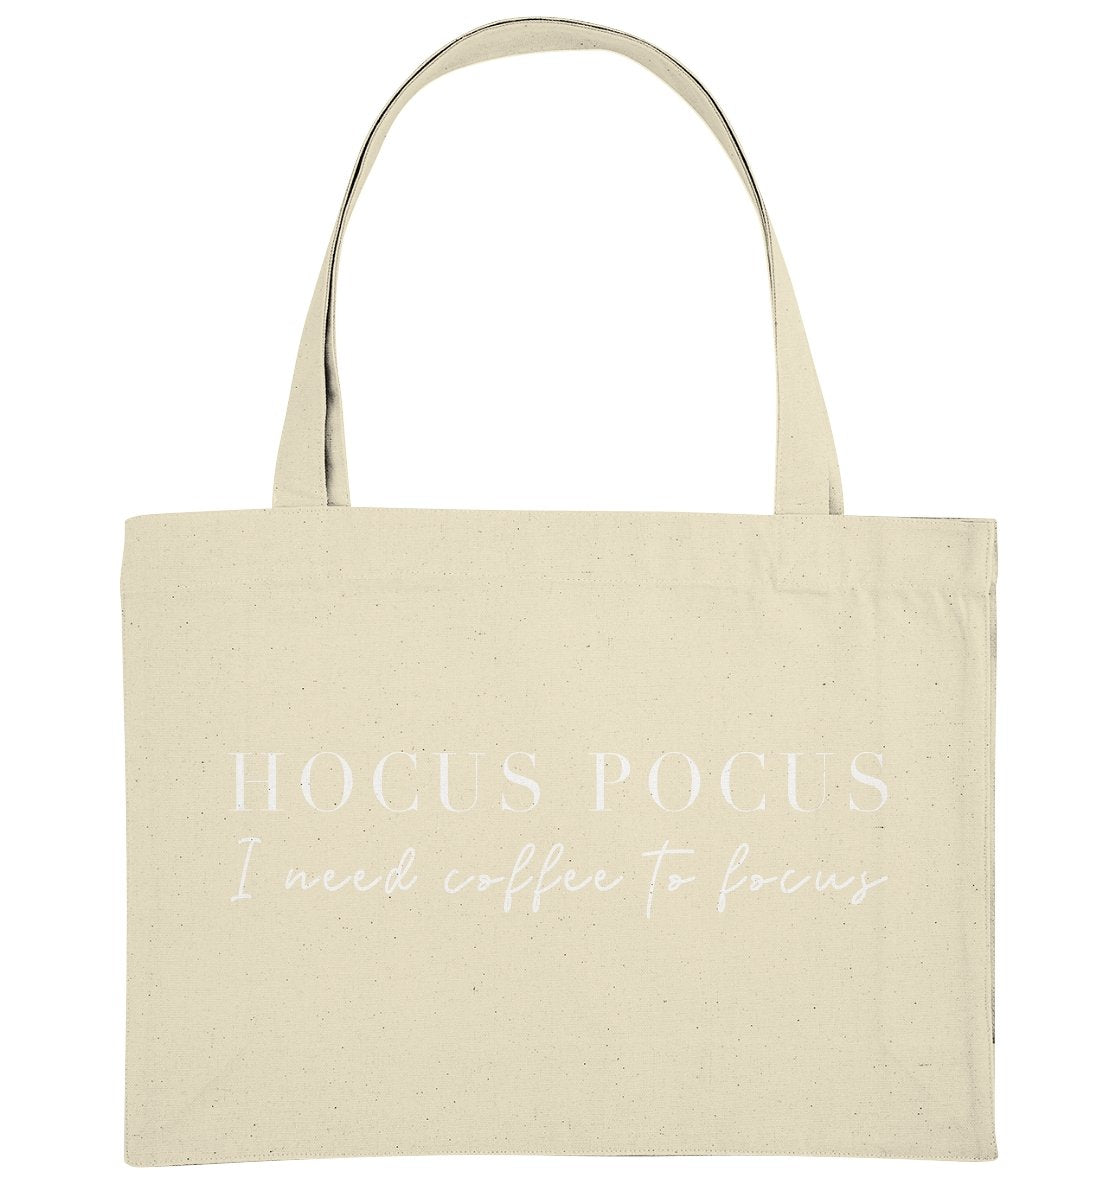 HOCUS POCUS I NEED COFFEE TO FOCUS - Organic Shopping-Bag - FAMILY BY HEART